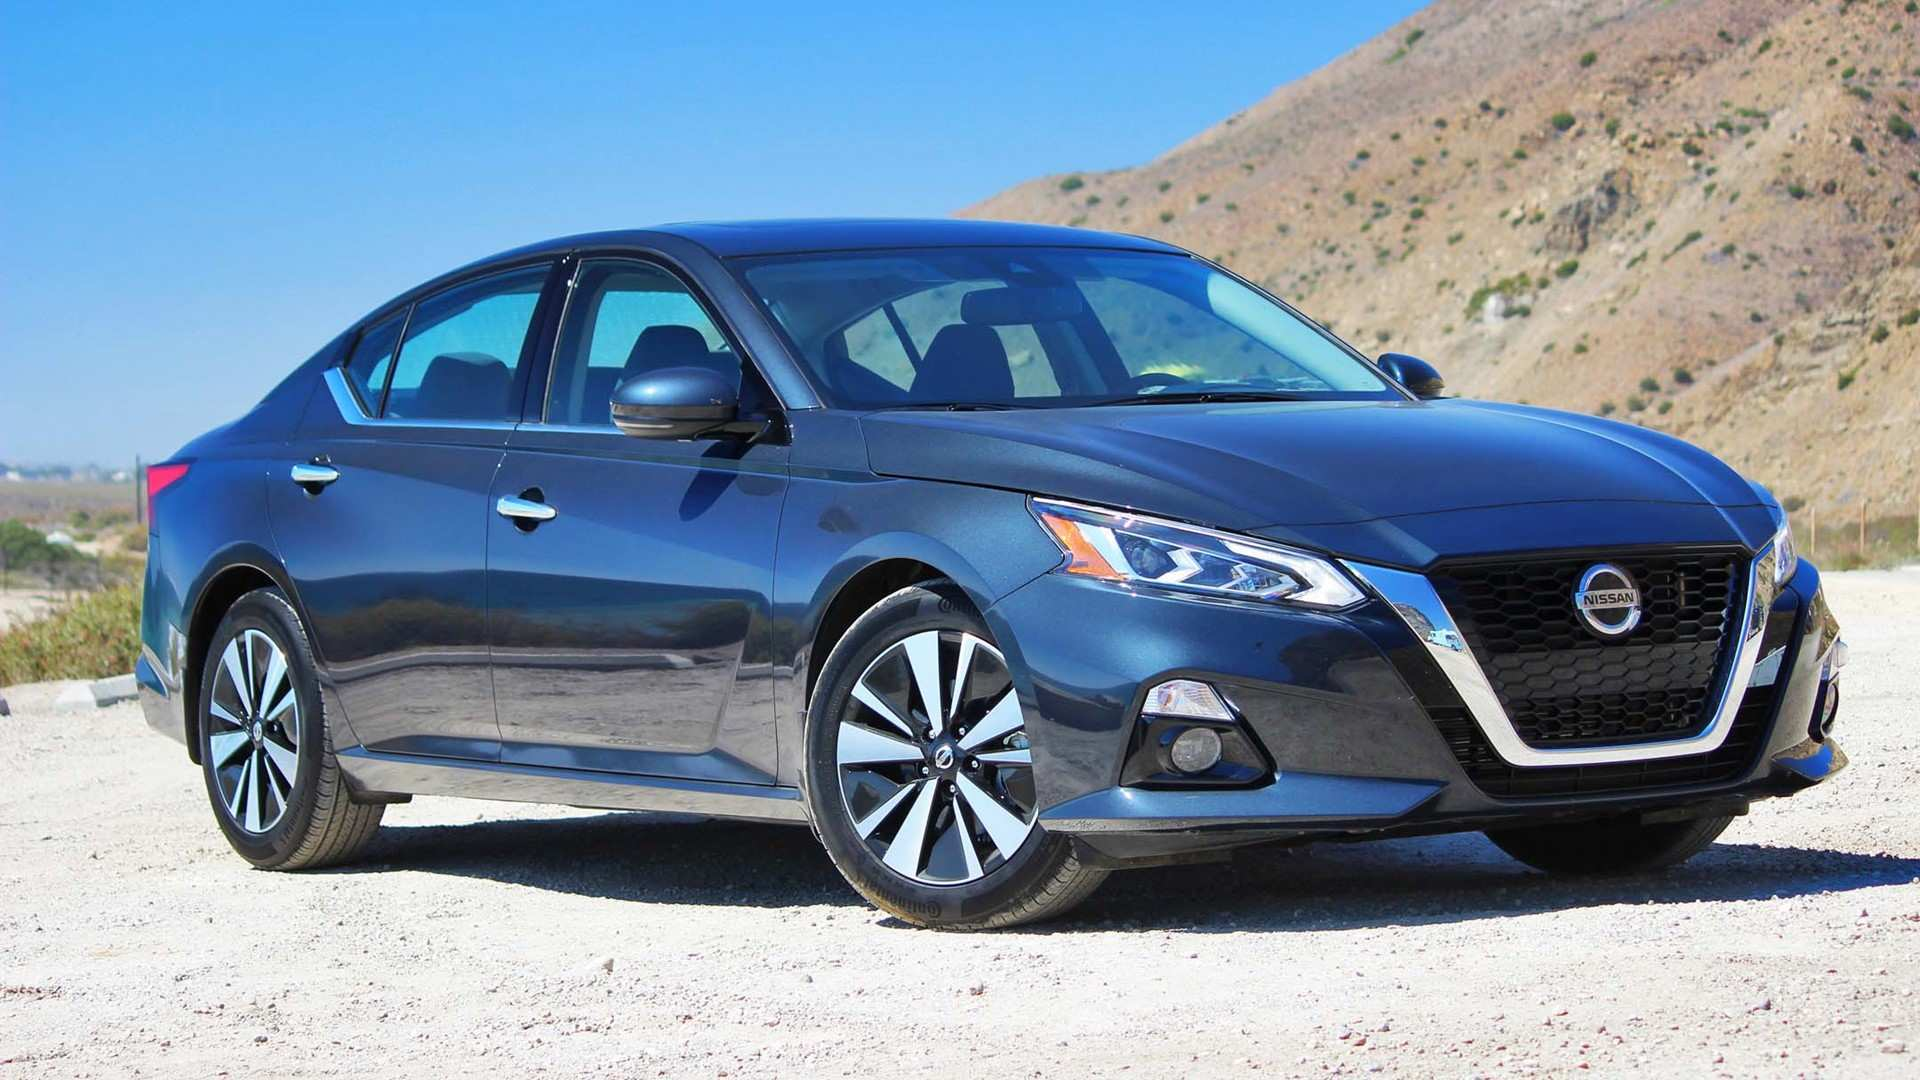 59 The 2019 Nissan Altima Engine Release Date